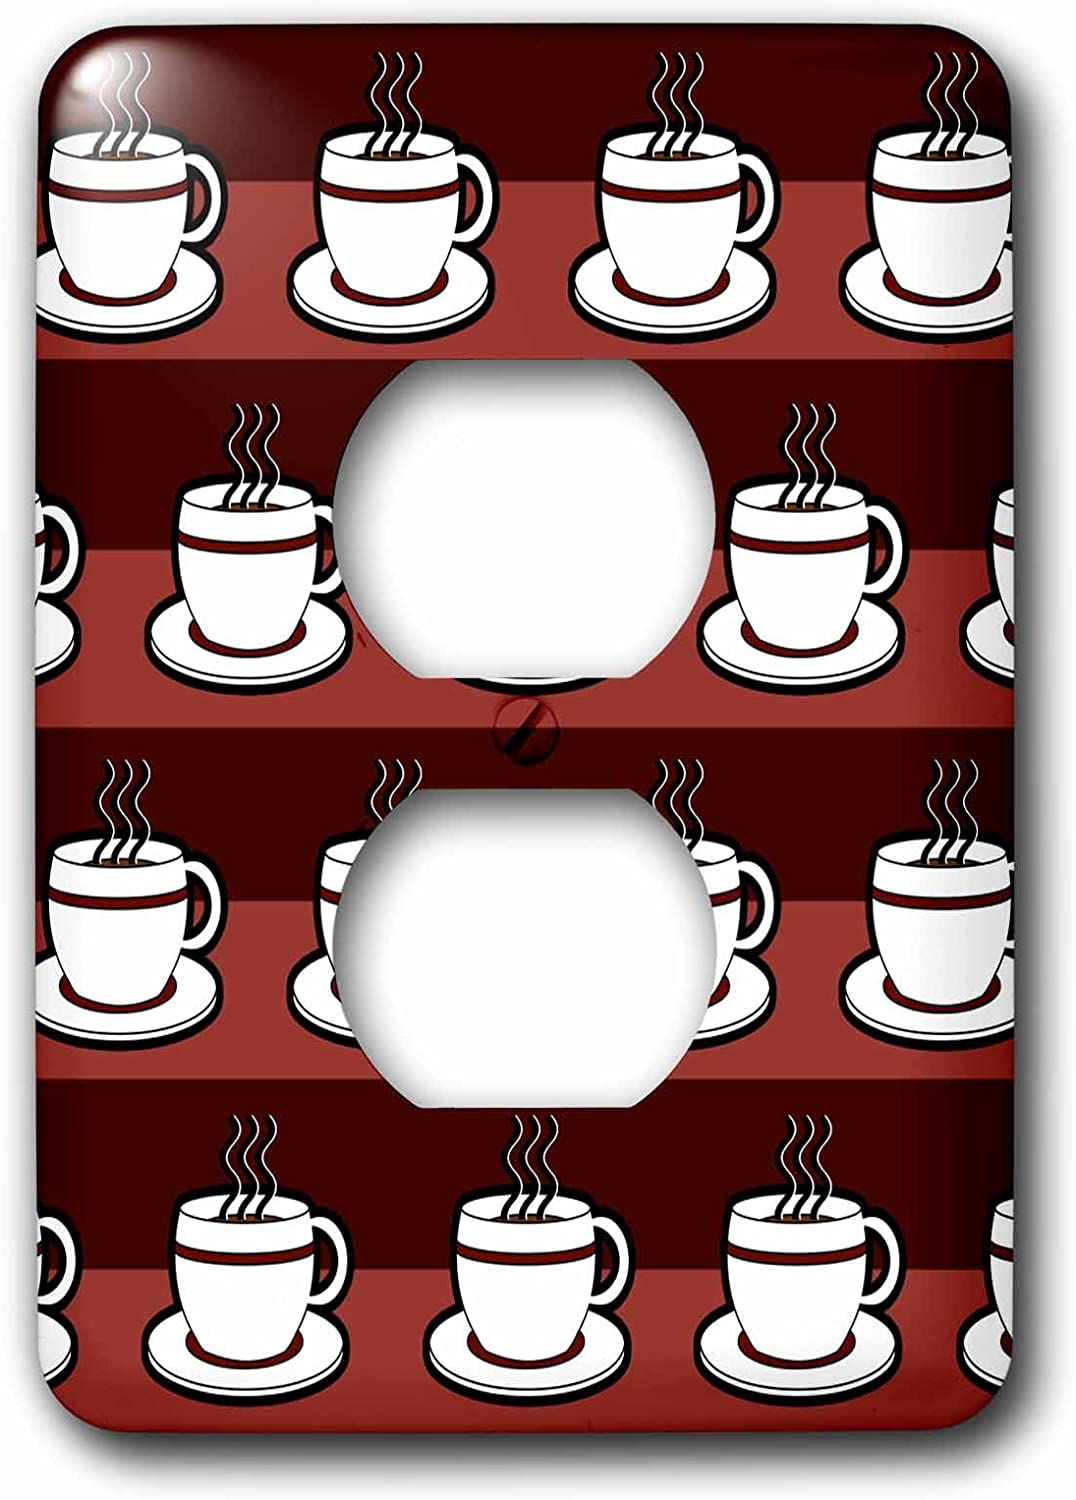 3drose Lsp 58654 6 Lover Gift Coffee Cups Print Red 2 Plug Outlet Cover Outlet Plates Amazon Com